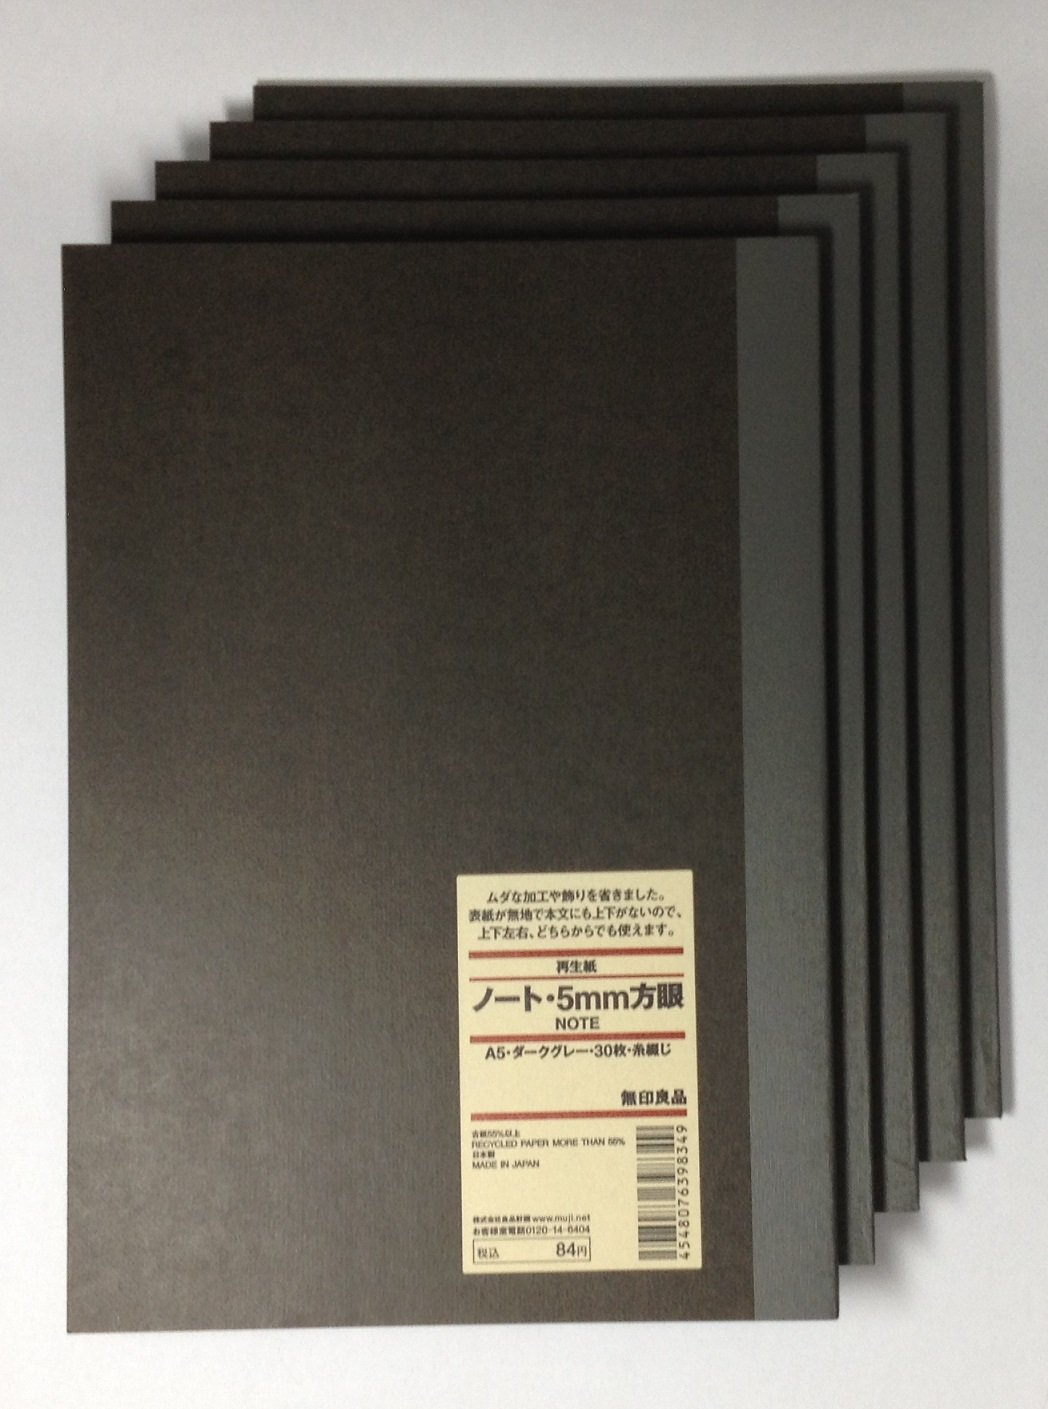 MUJI Notebook A5 5mm-grid 30sheets - Pack of 5books